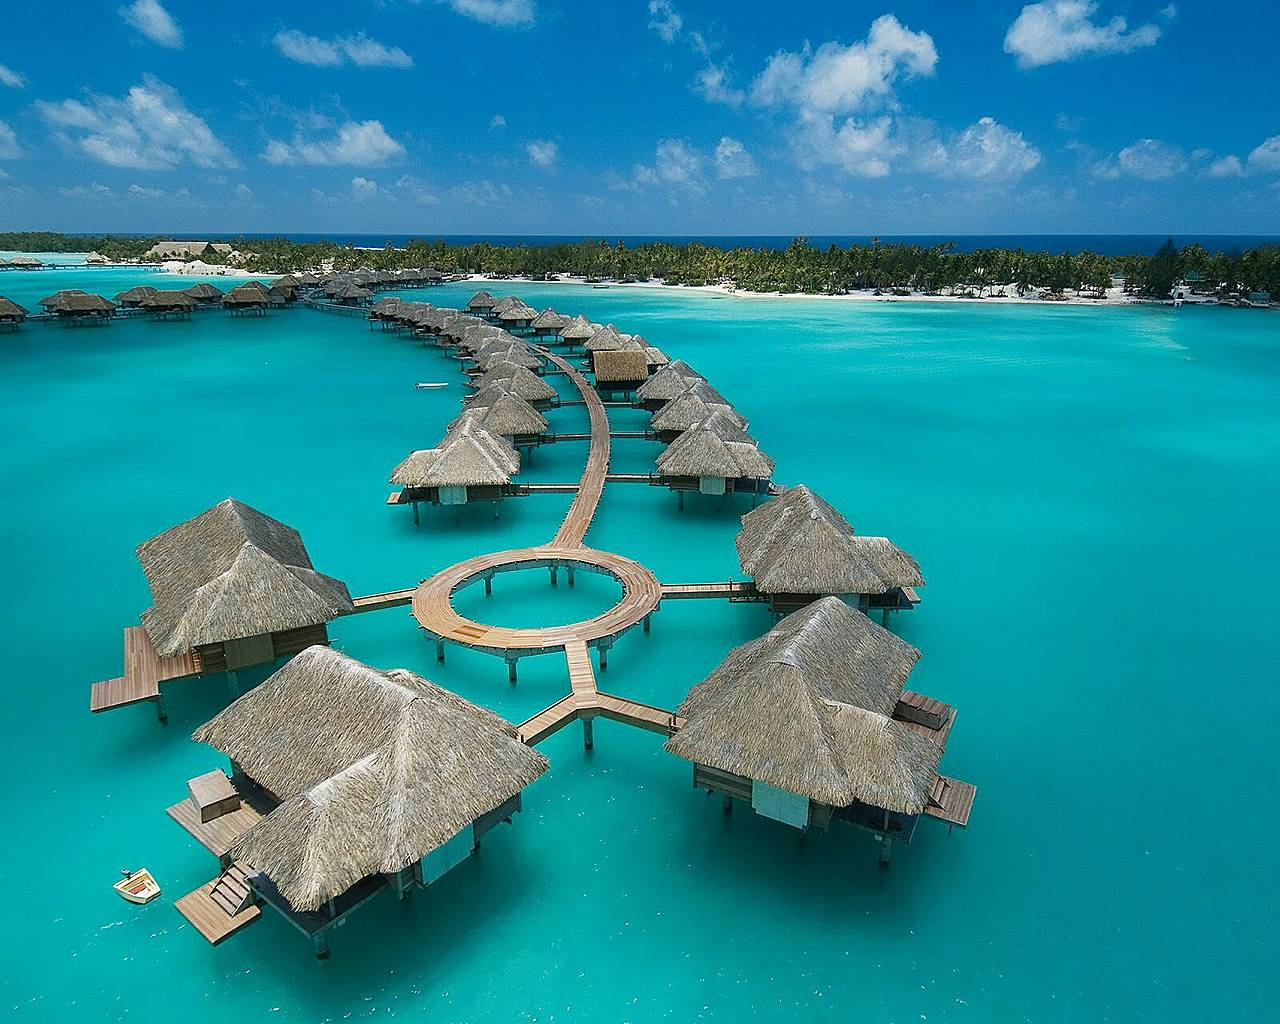 The holiday of a lifetime at the luxurious Four Seasons, French Polynesia